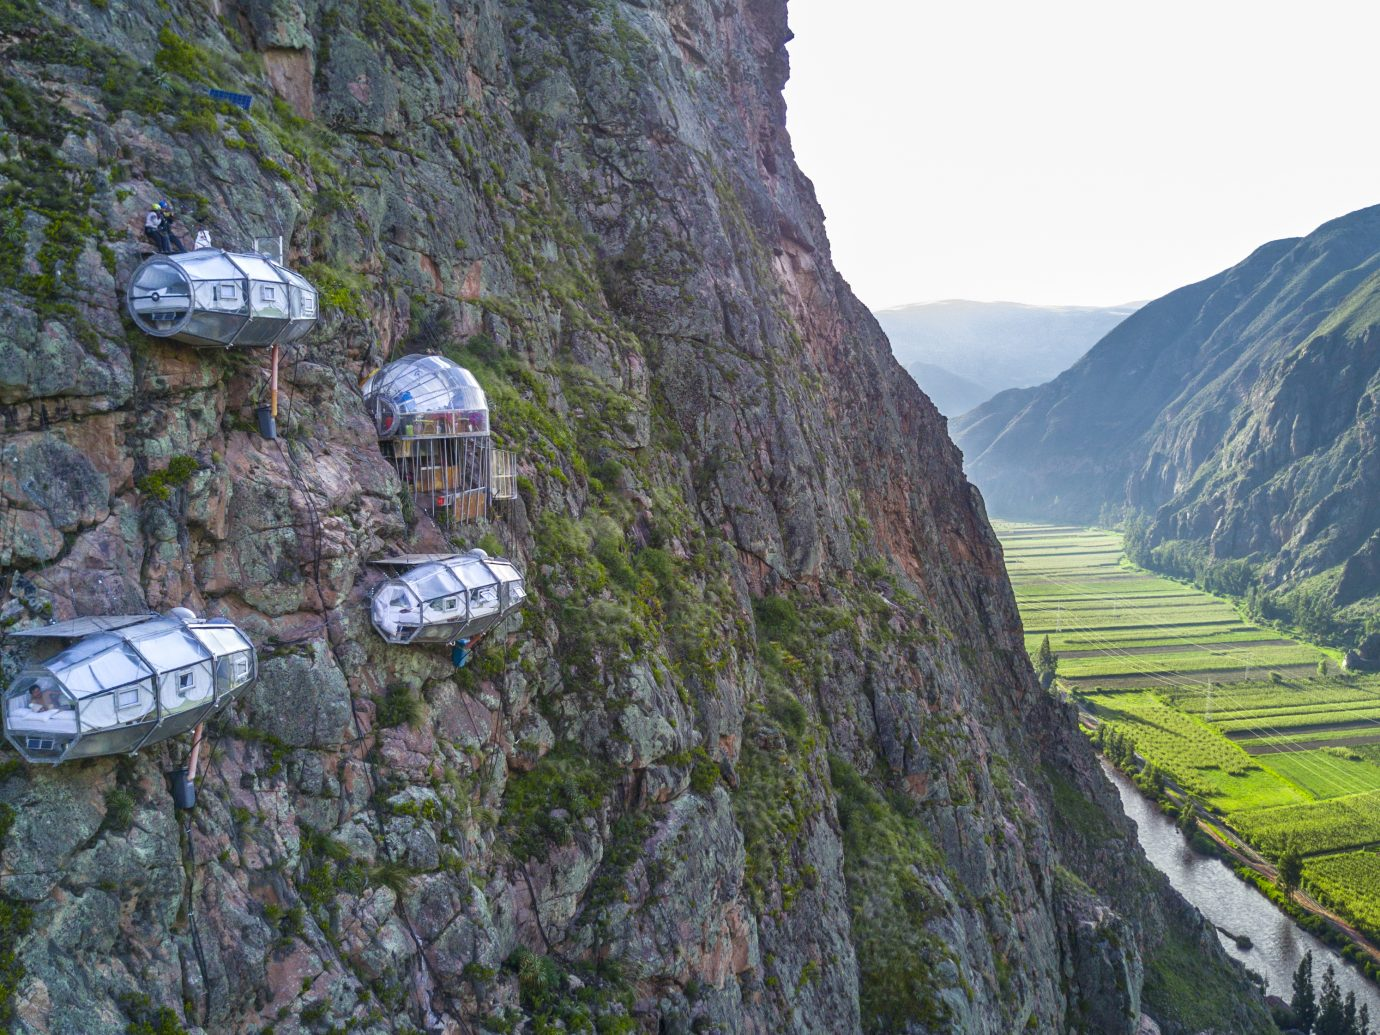 Skylodge pods hanging on the side of a mountain